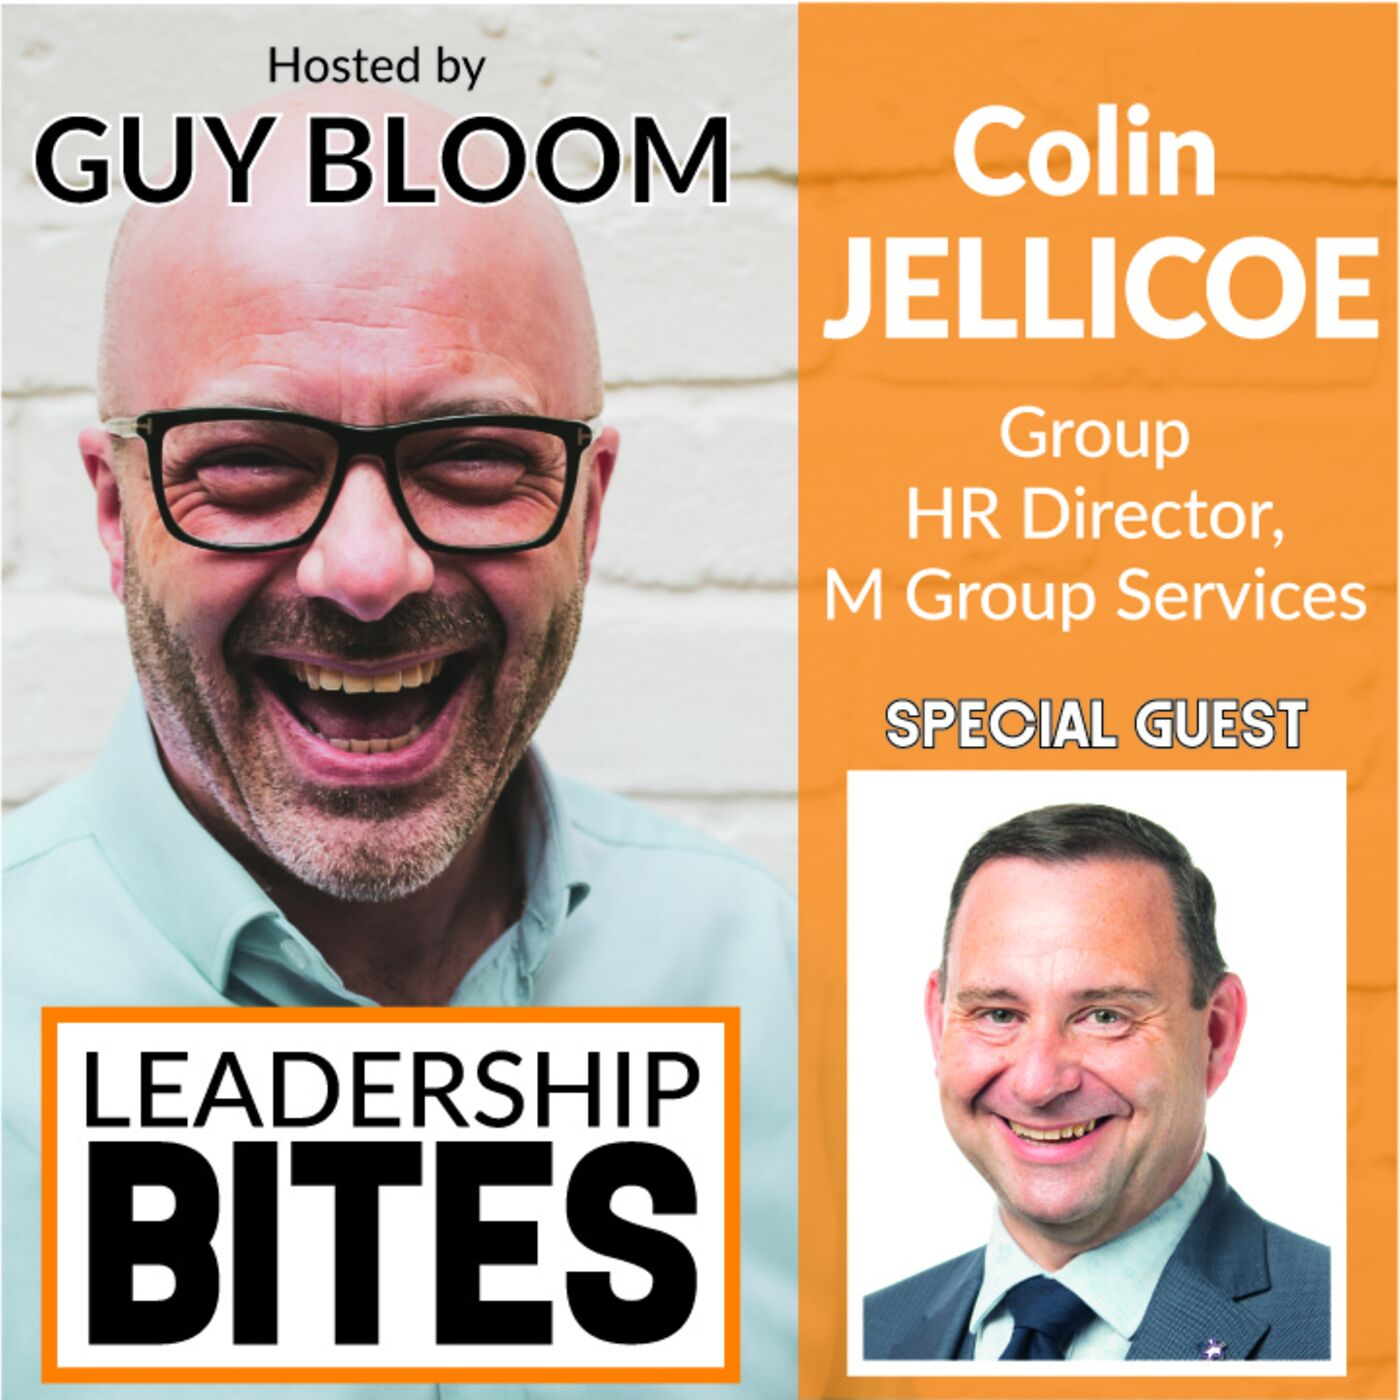 Colin Jellicoe, Group Human Resources Director, M Group Services